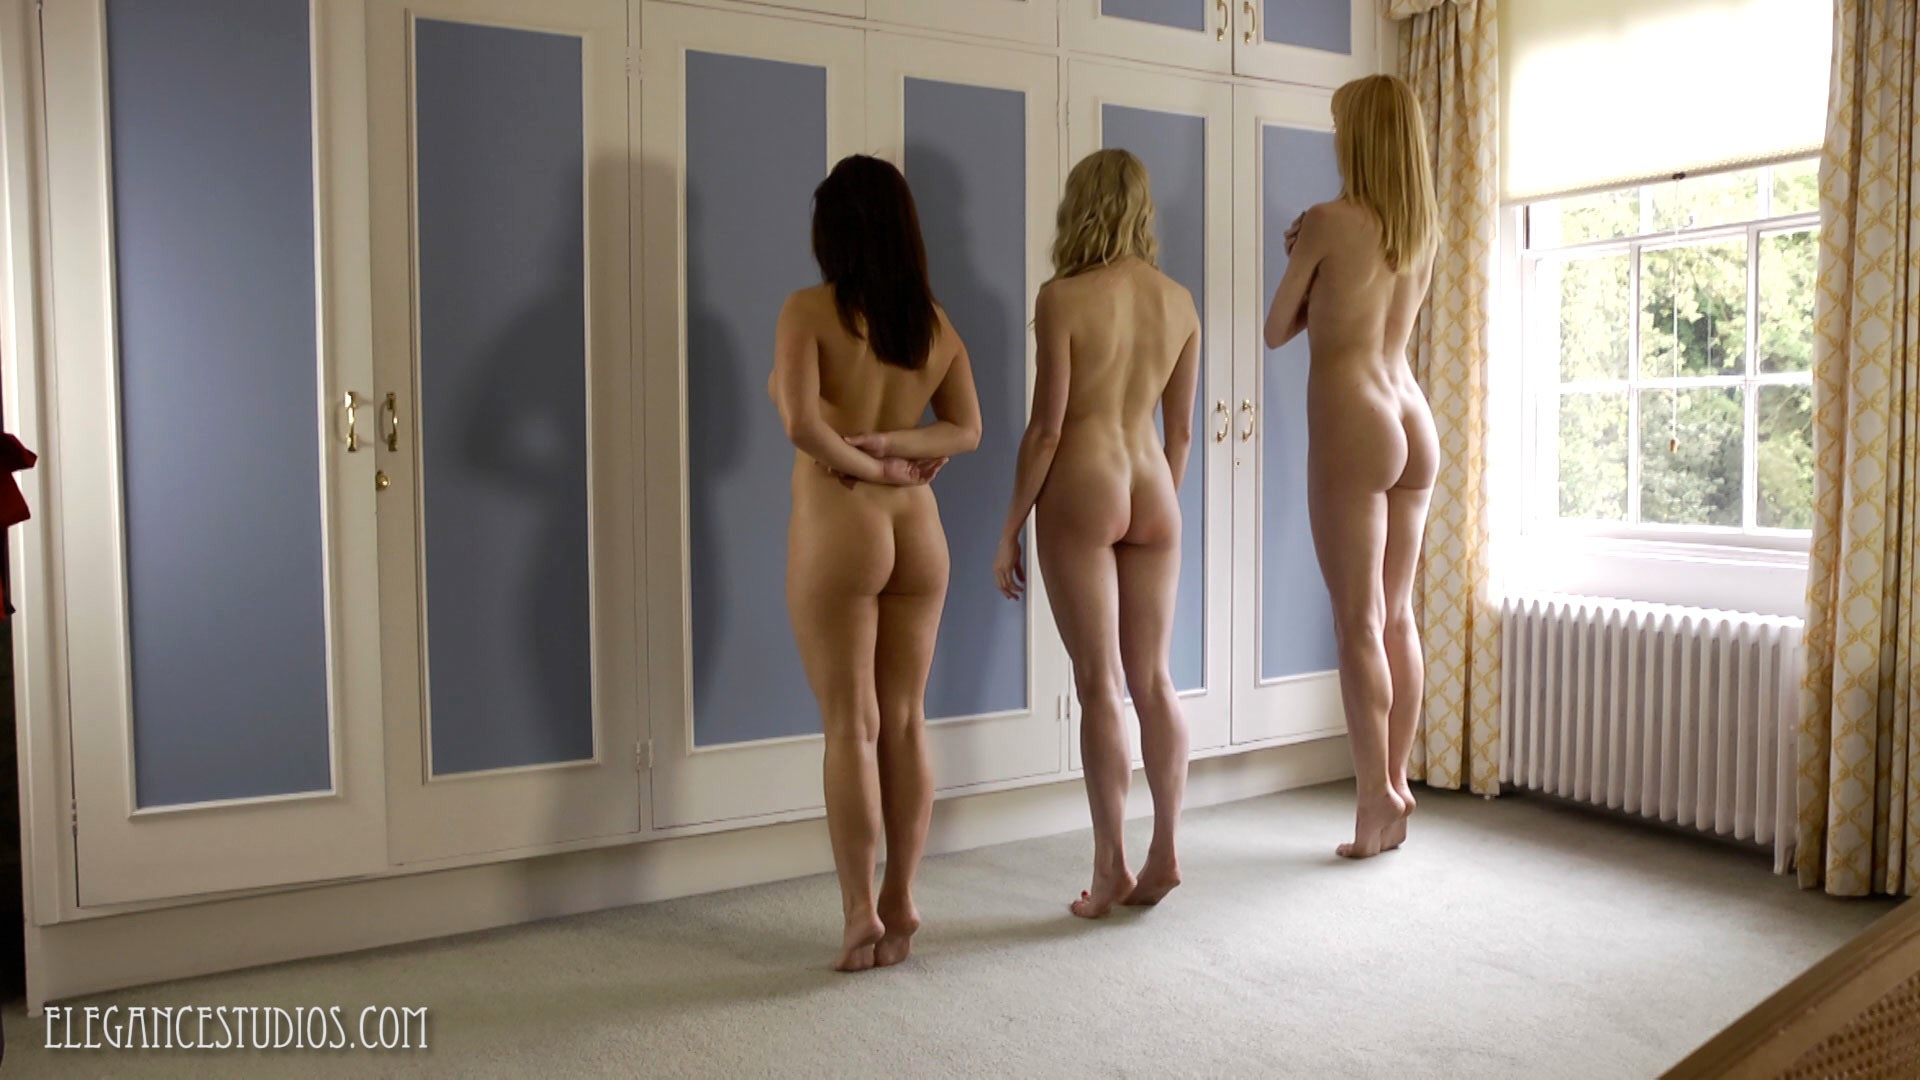 Seems Nude sex slave auction